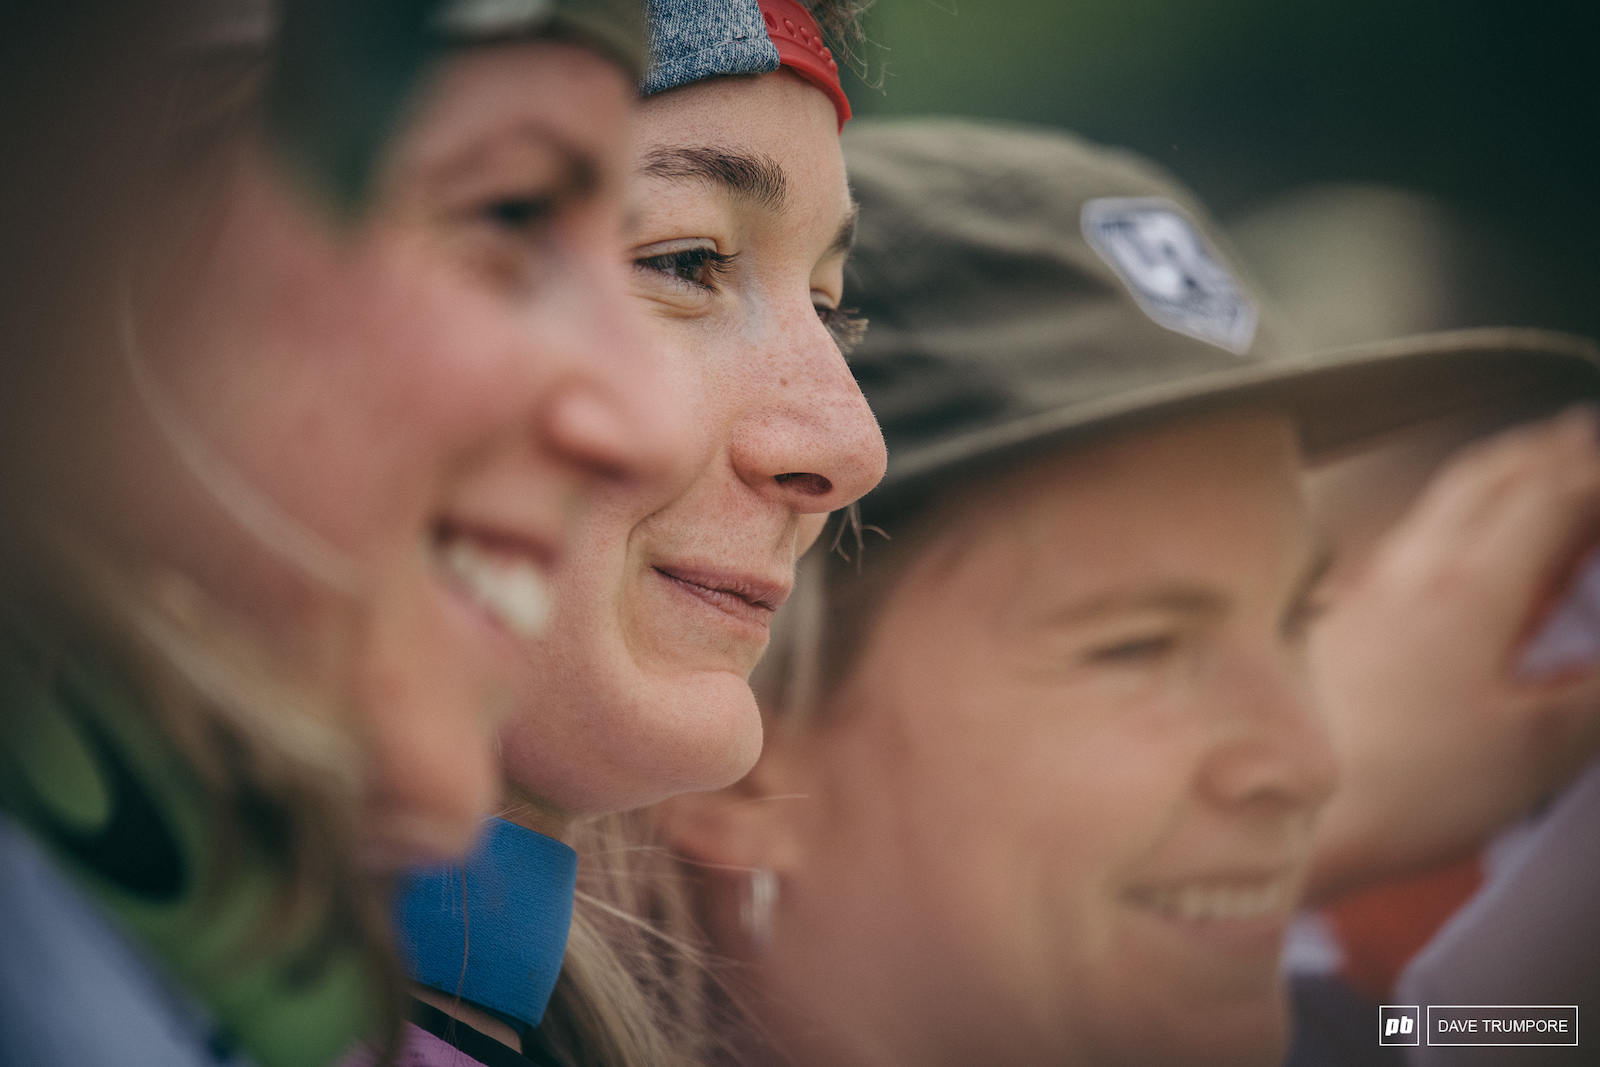 The fastest woman in the world Tahnee Seagrave flanked by Rachel Atherton and Tracey Hannah on the podium